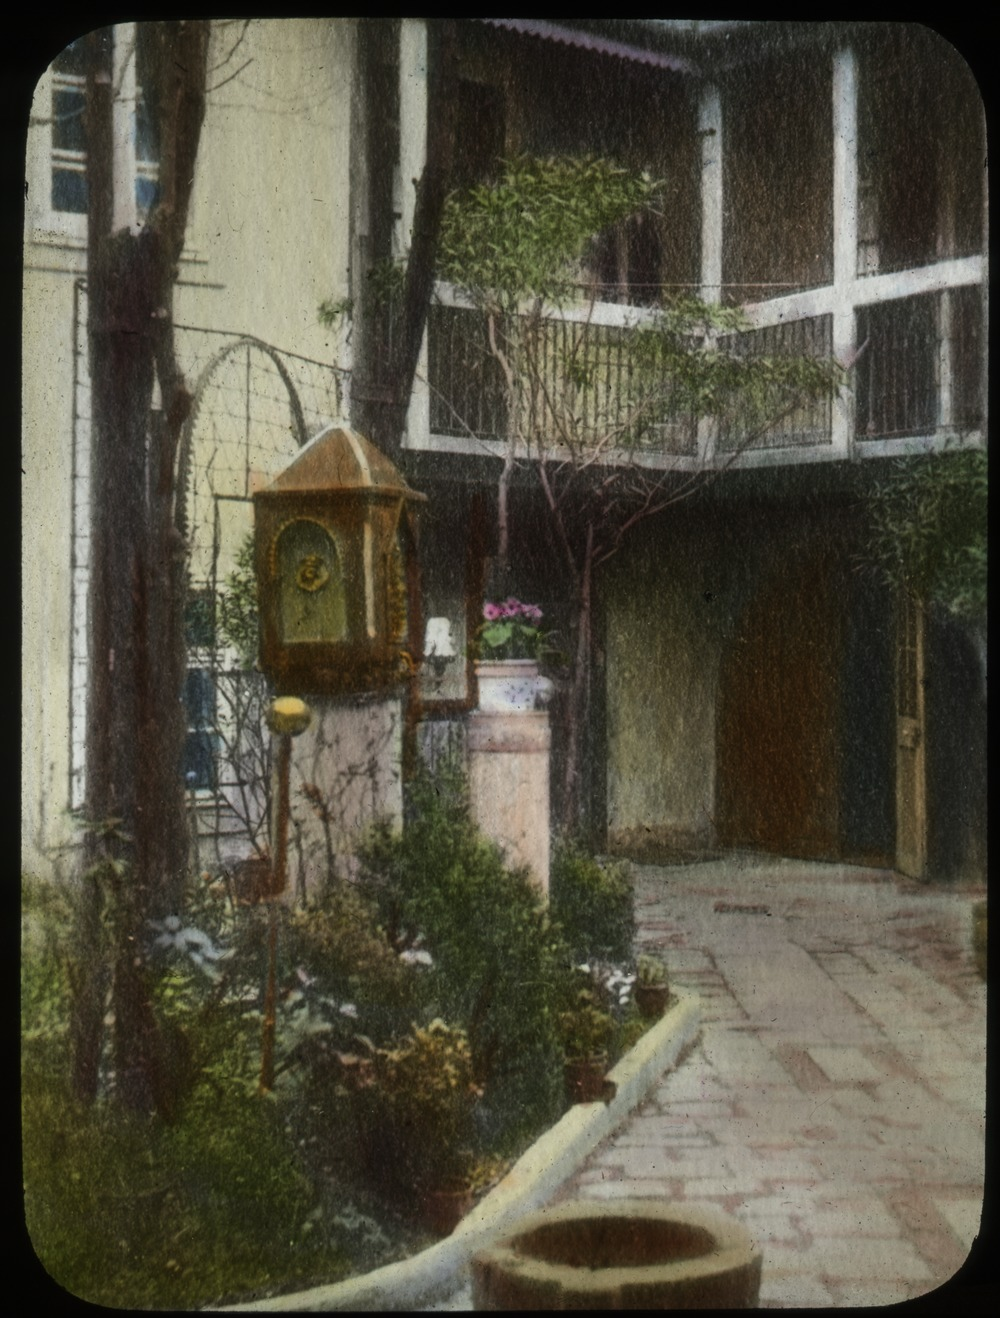 Courtyard, Vienna (stone courtyard with planting beds), undated